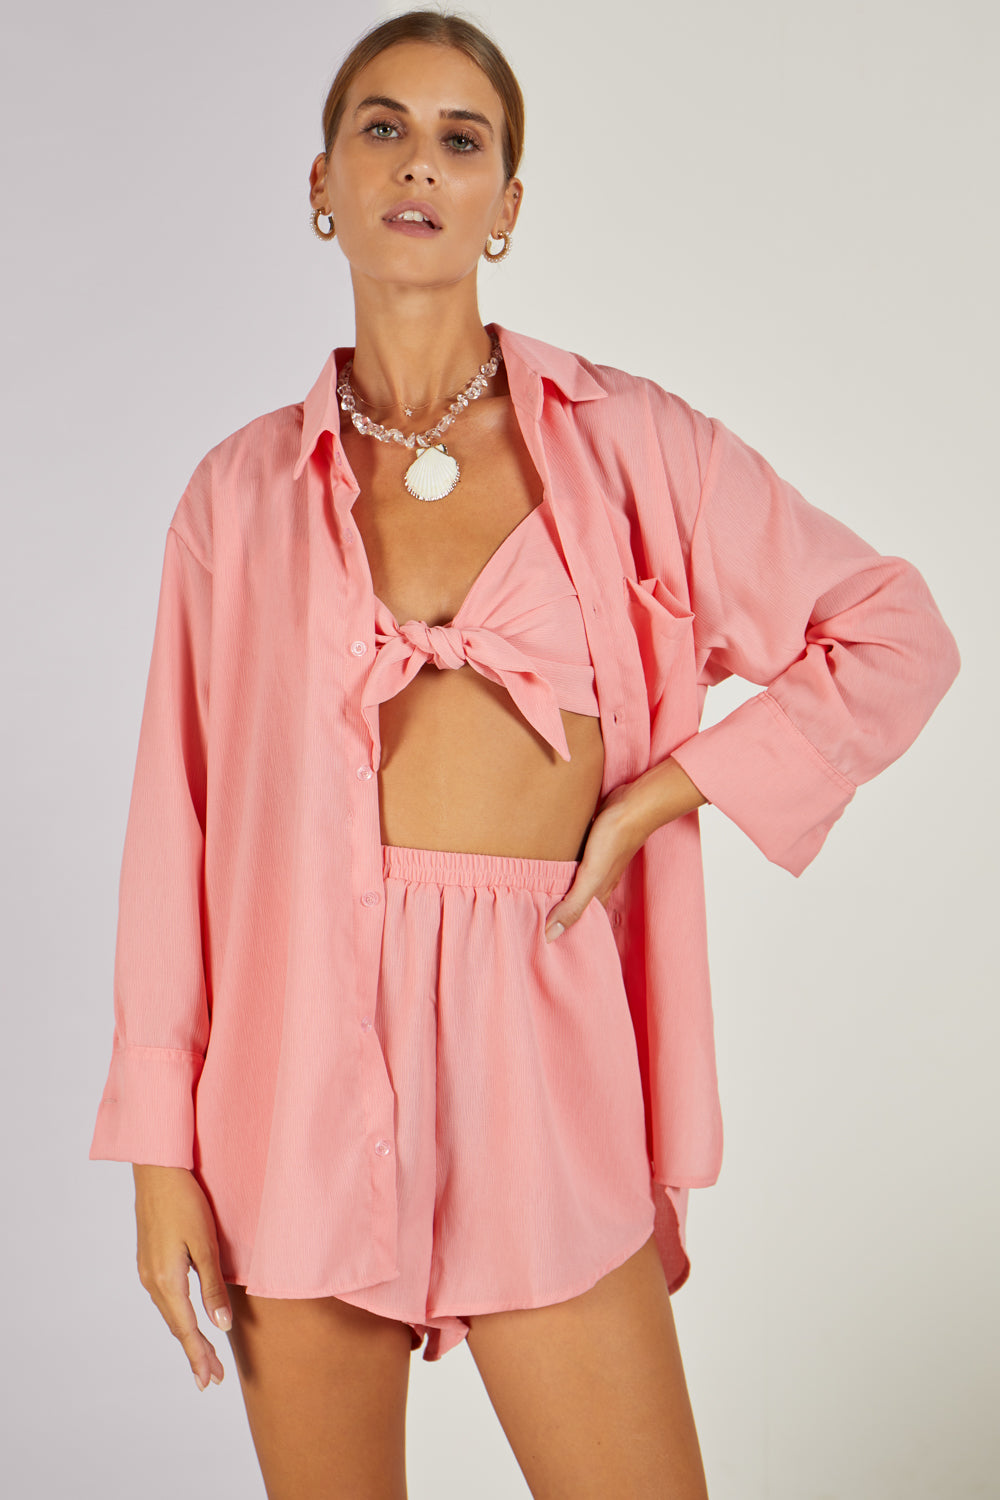 Dani Dyer Never Ending Summer Shirt Coral